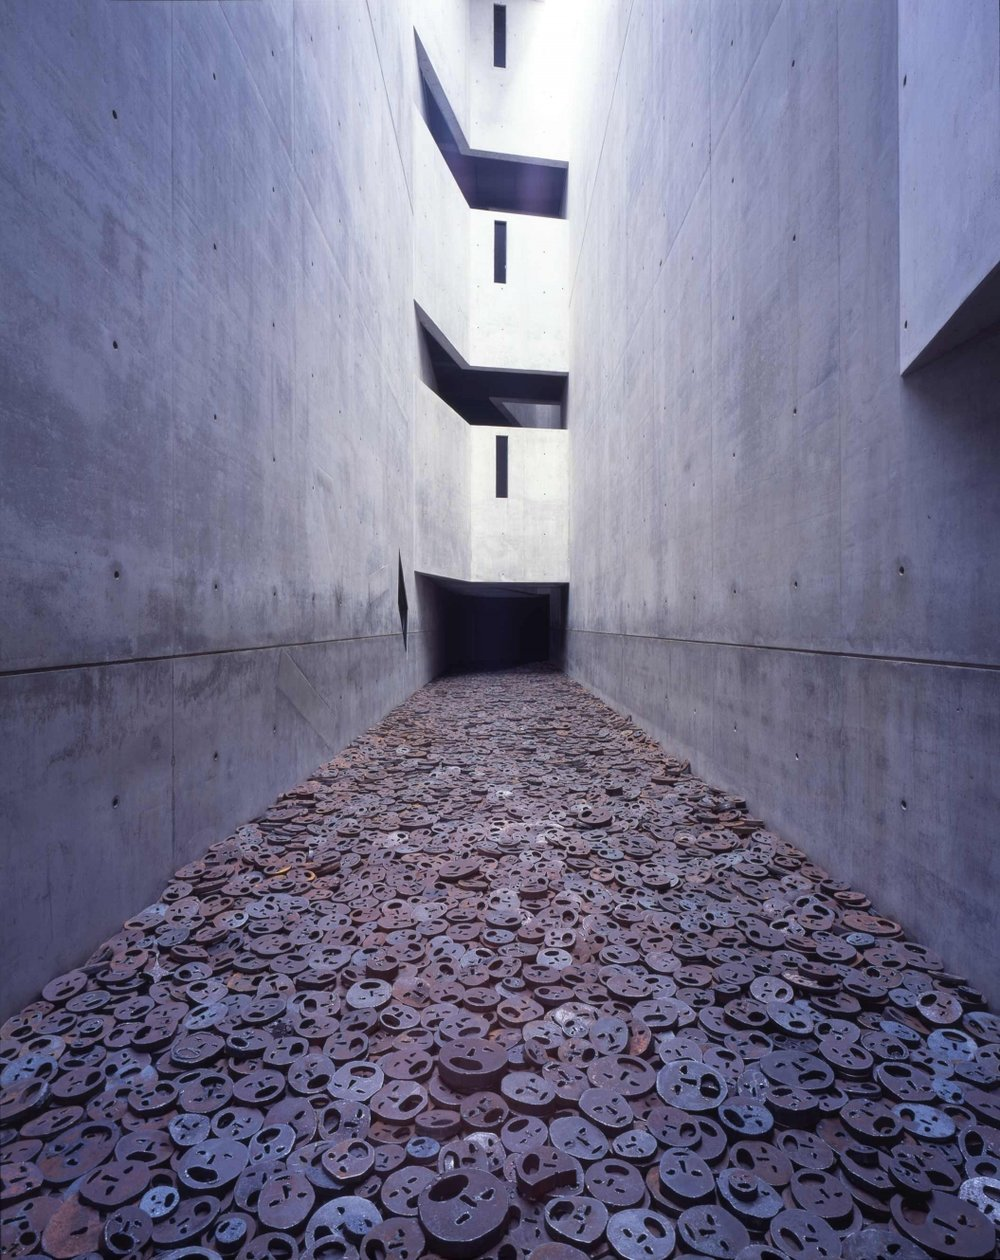 One of many such spaces throughout the Libeskind Building, the Memory Void features the haunting Schalechet installation by Menashe Kadishman. Photo: Jens Ziehe.